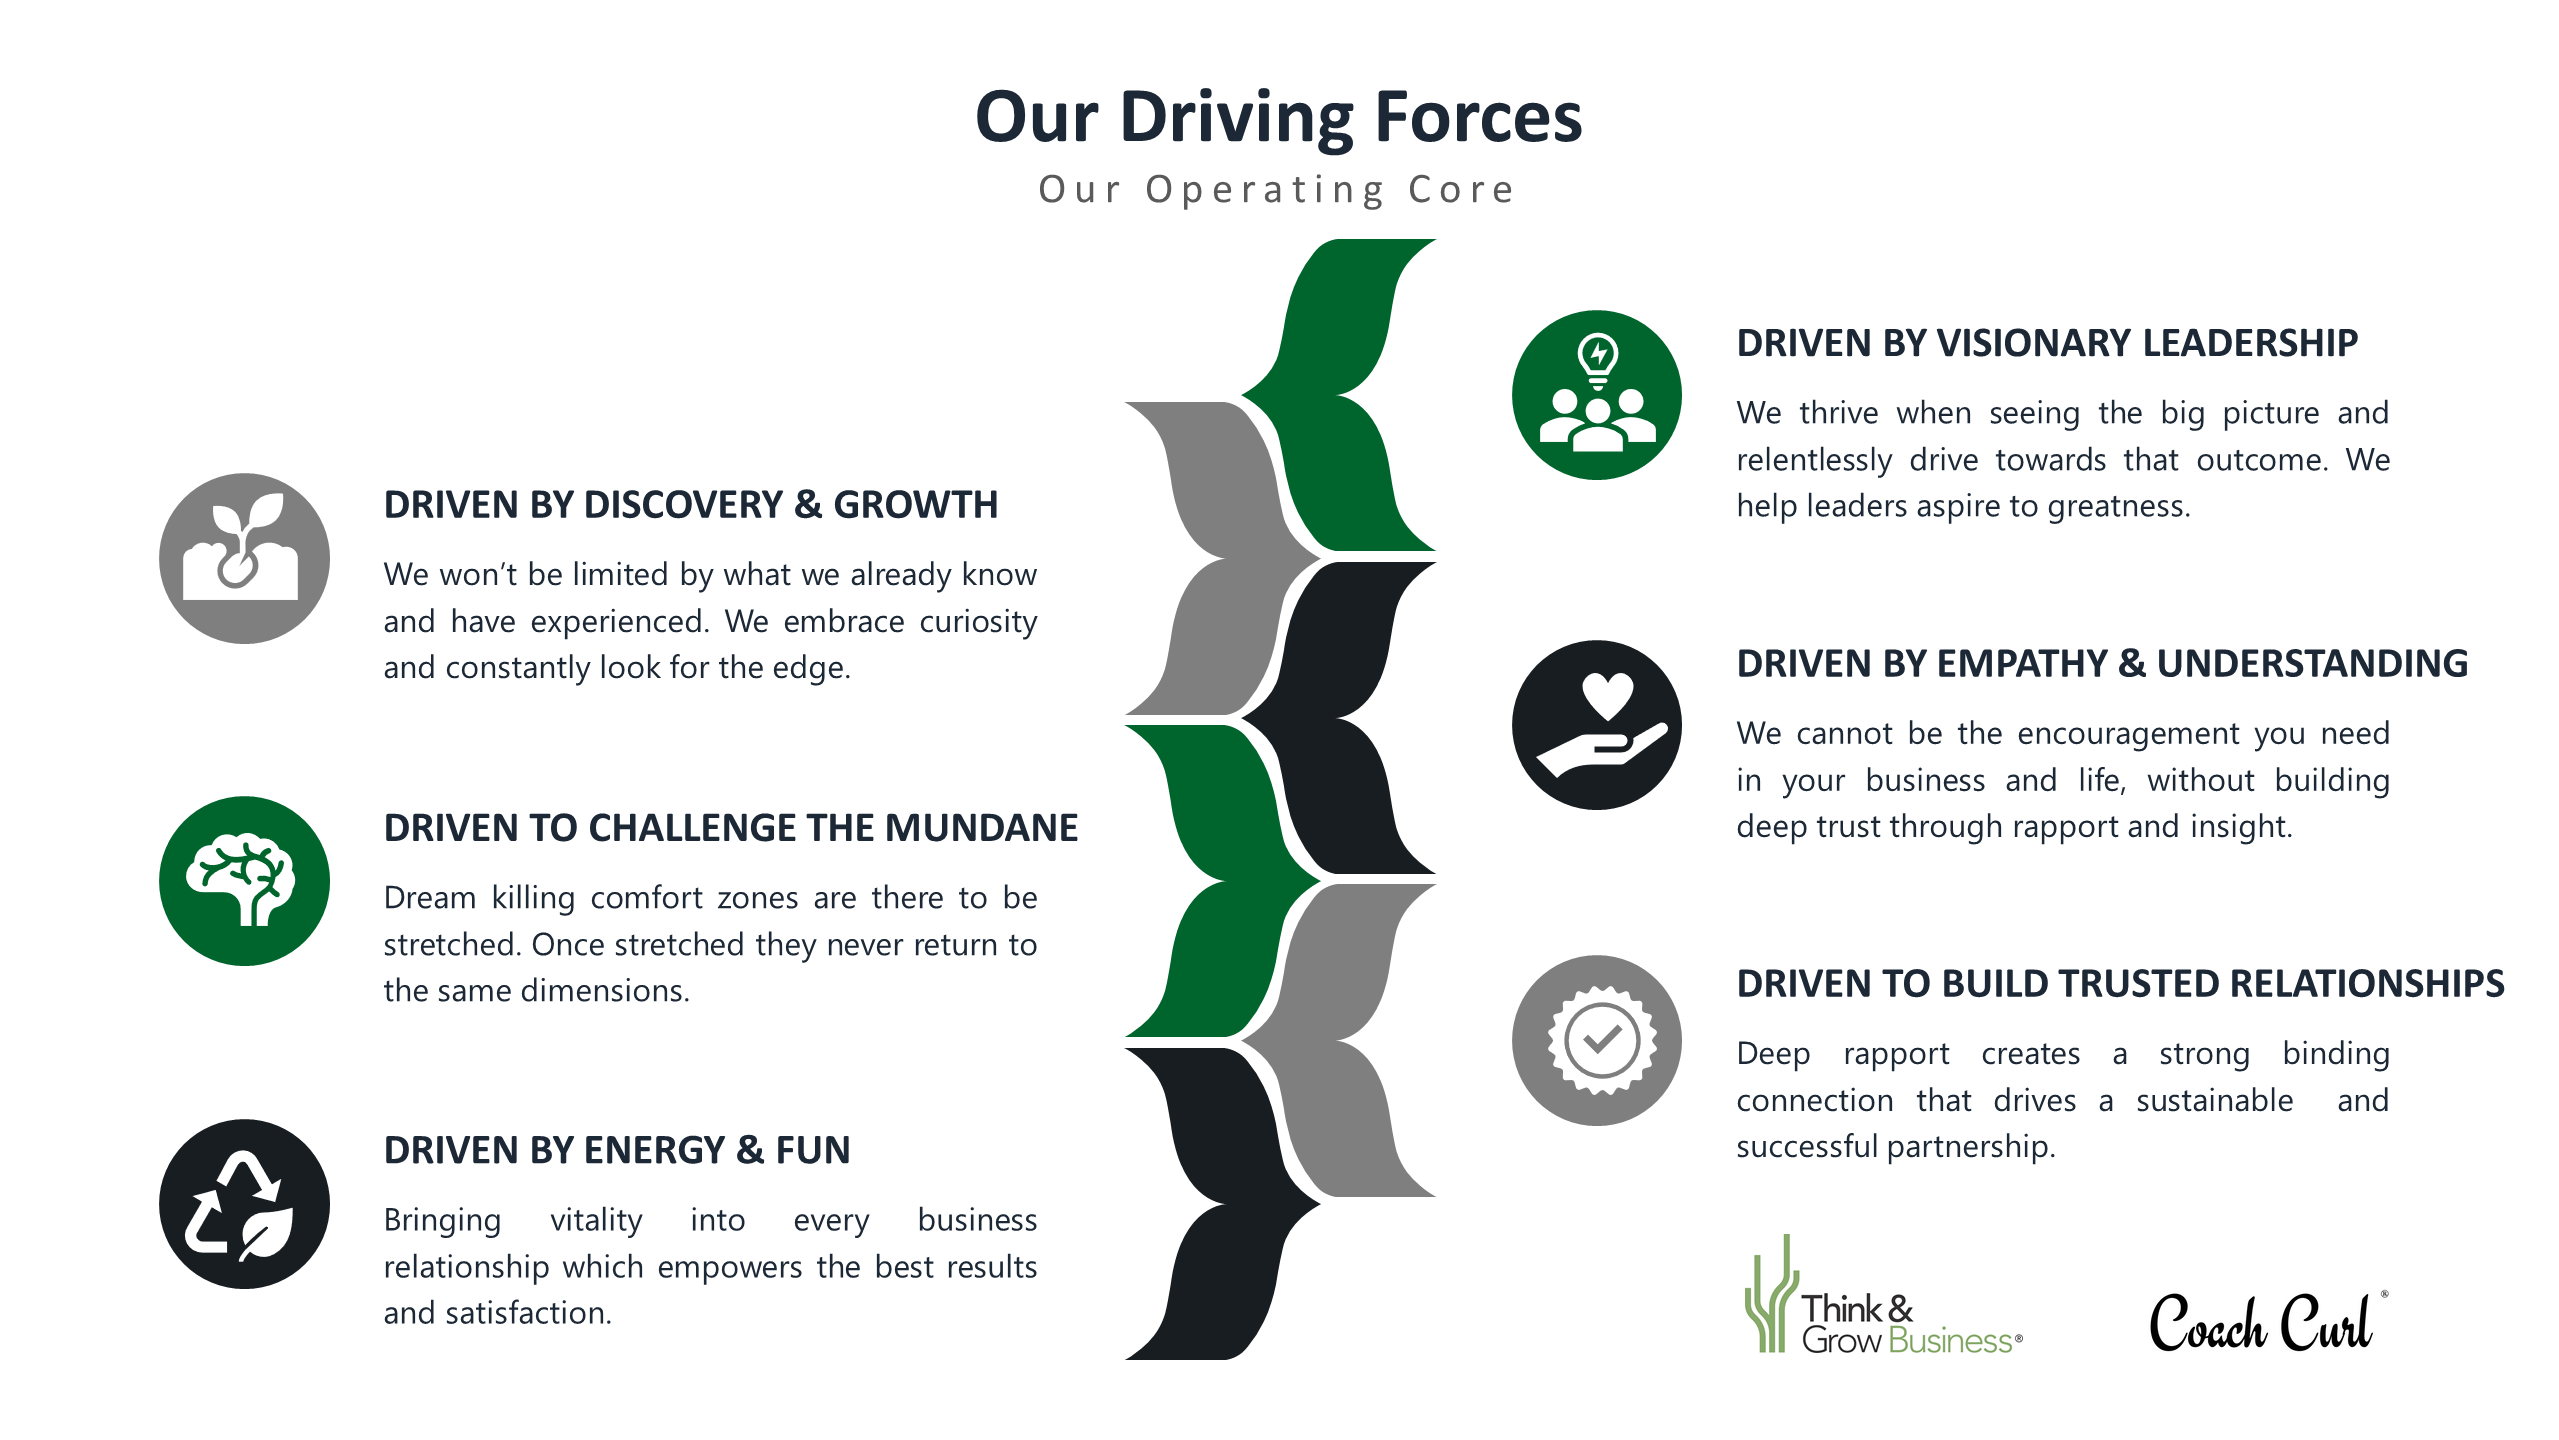 Our Driving Forces in Business